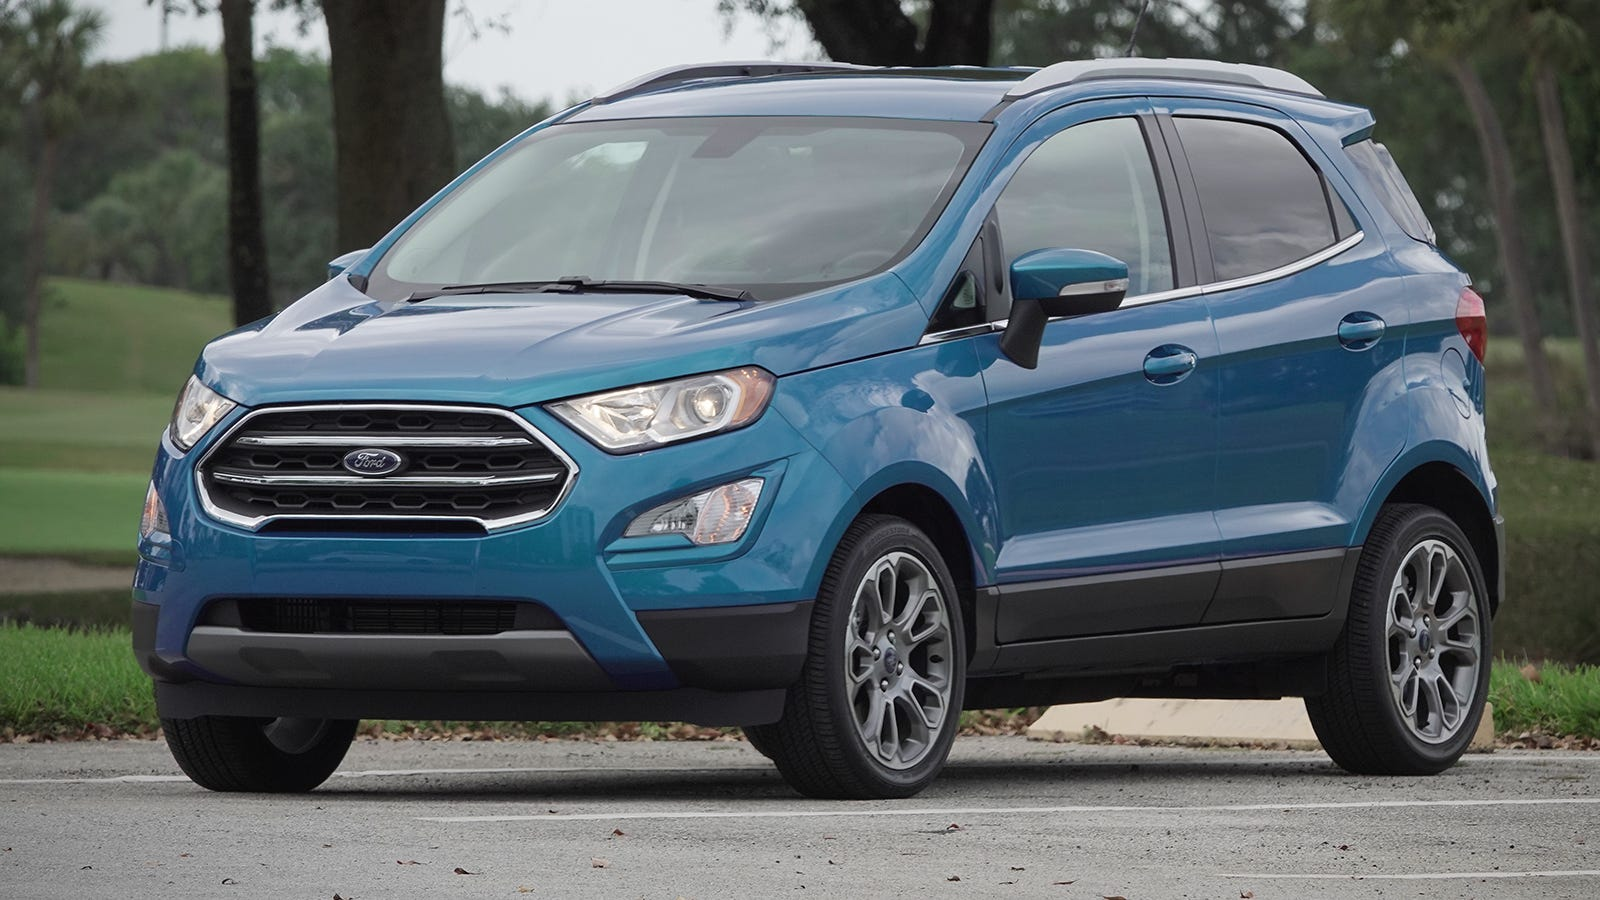 So You Want To Buy A 2018 Ford EcoSport